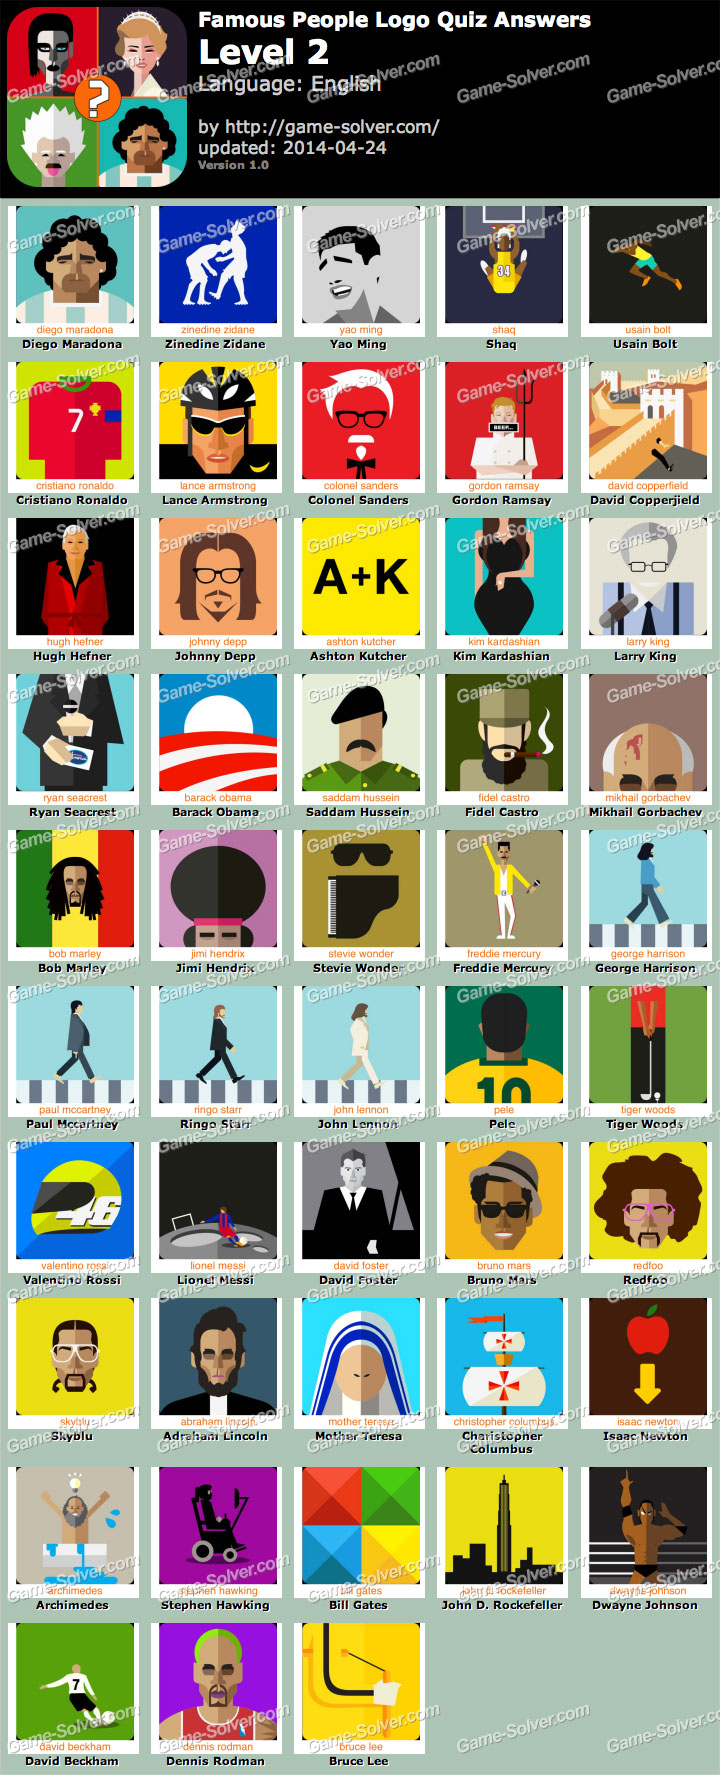 famous people logo quiz level 2 game solver